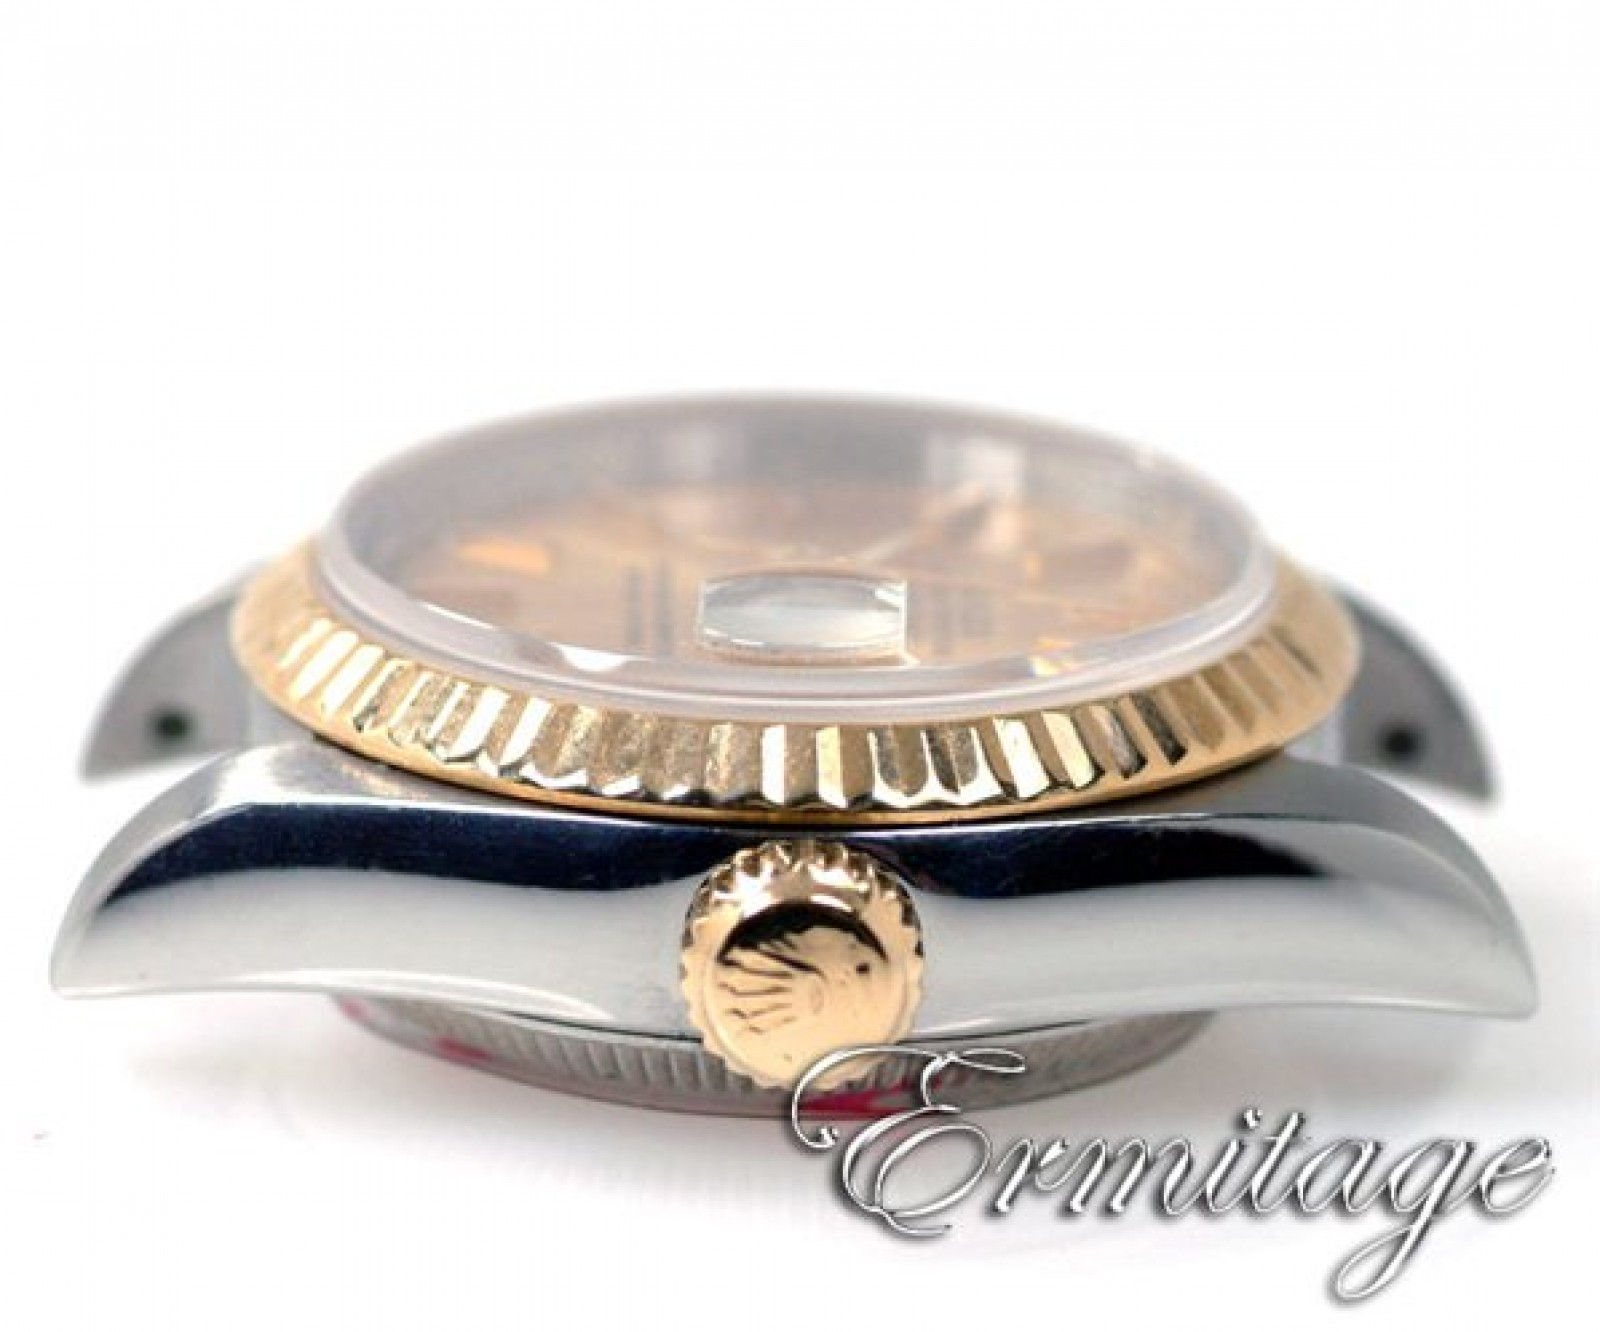 Pre-Owned Rolex Datejust 69173 Year 1996